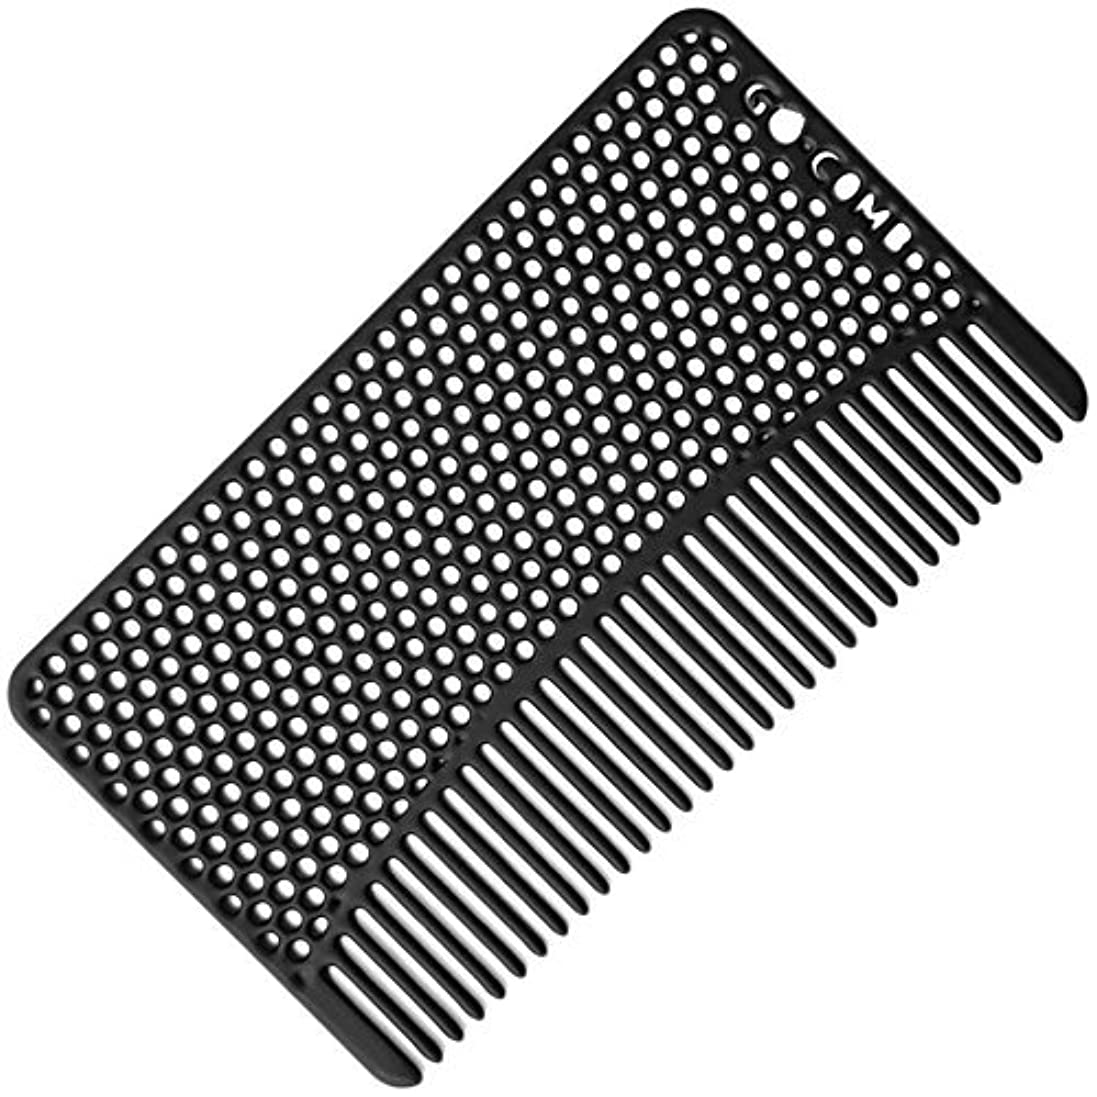 Go-Comb - Wallet Comb - Sleek, Durable Stainless Steel Hair and Beard Comb - Black [並行輸入品]